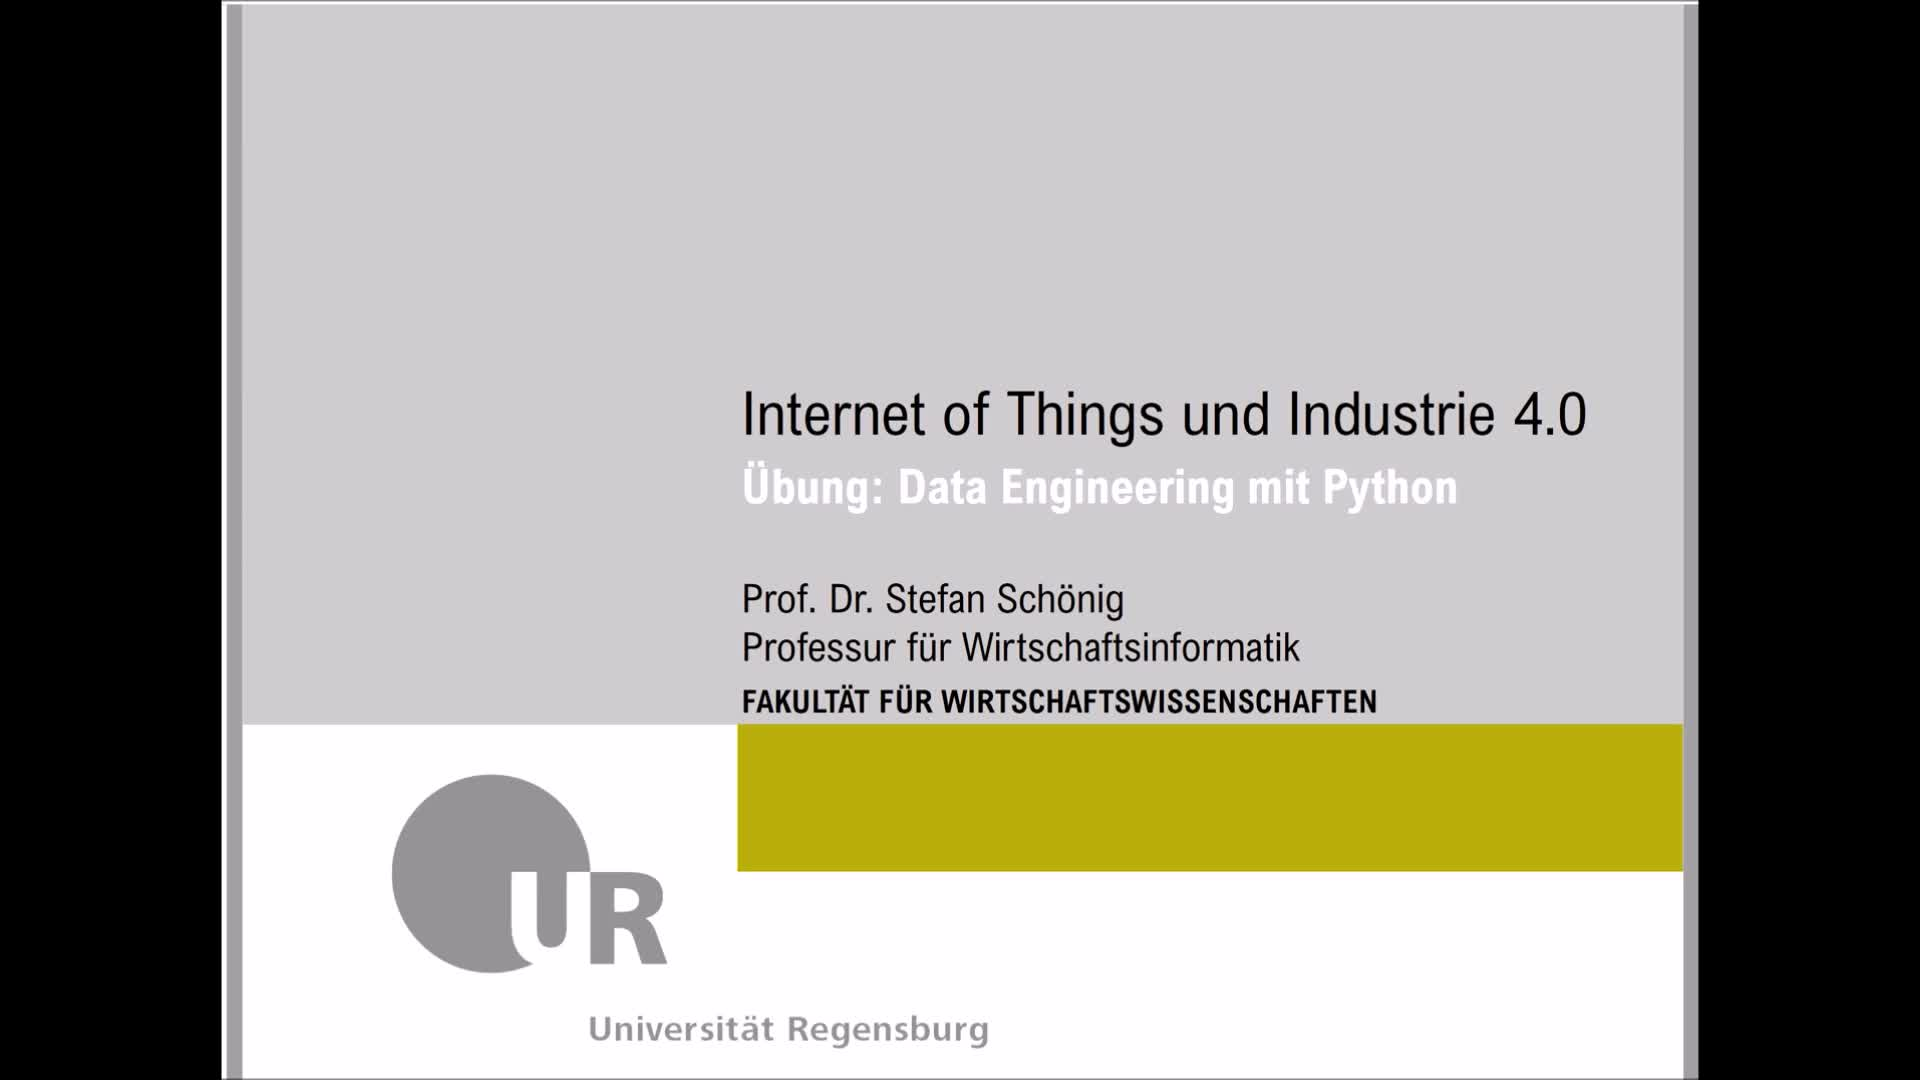 SS 2020 - Internet of Things und Industrie 4.0 - Übung 2 (Python Data Engineering)